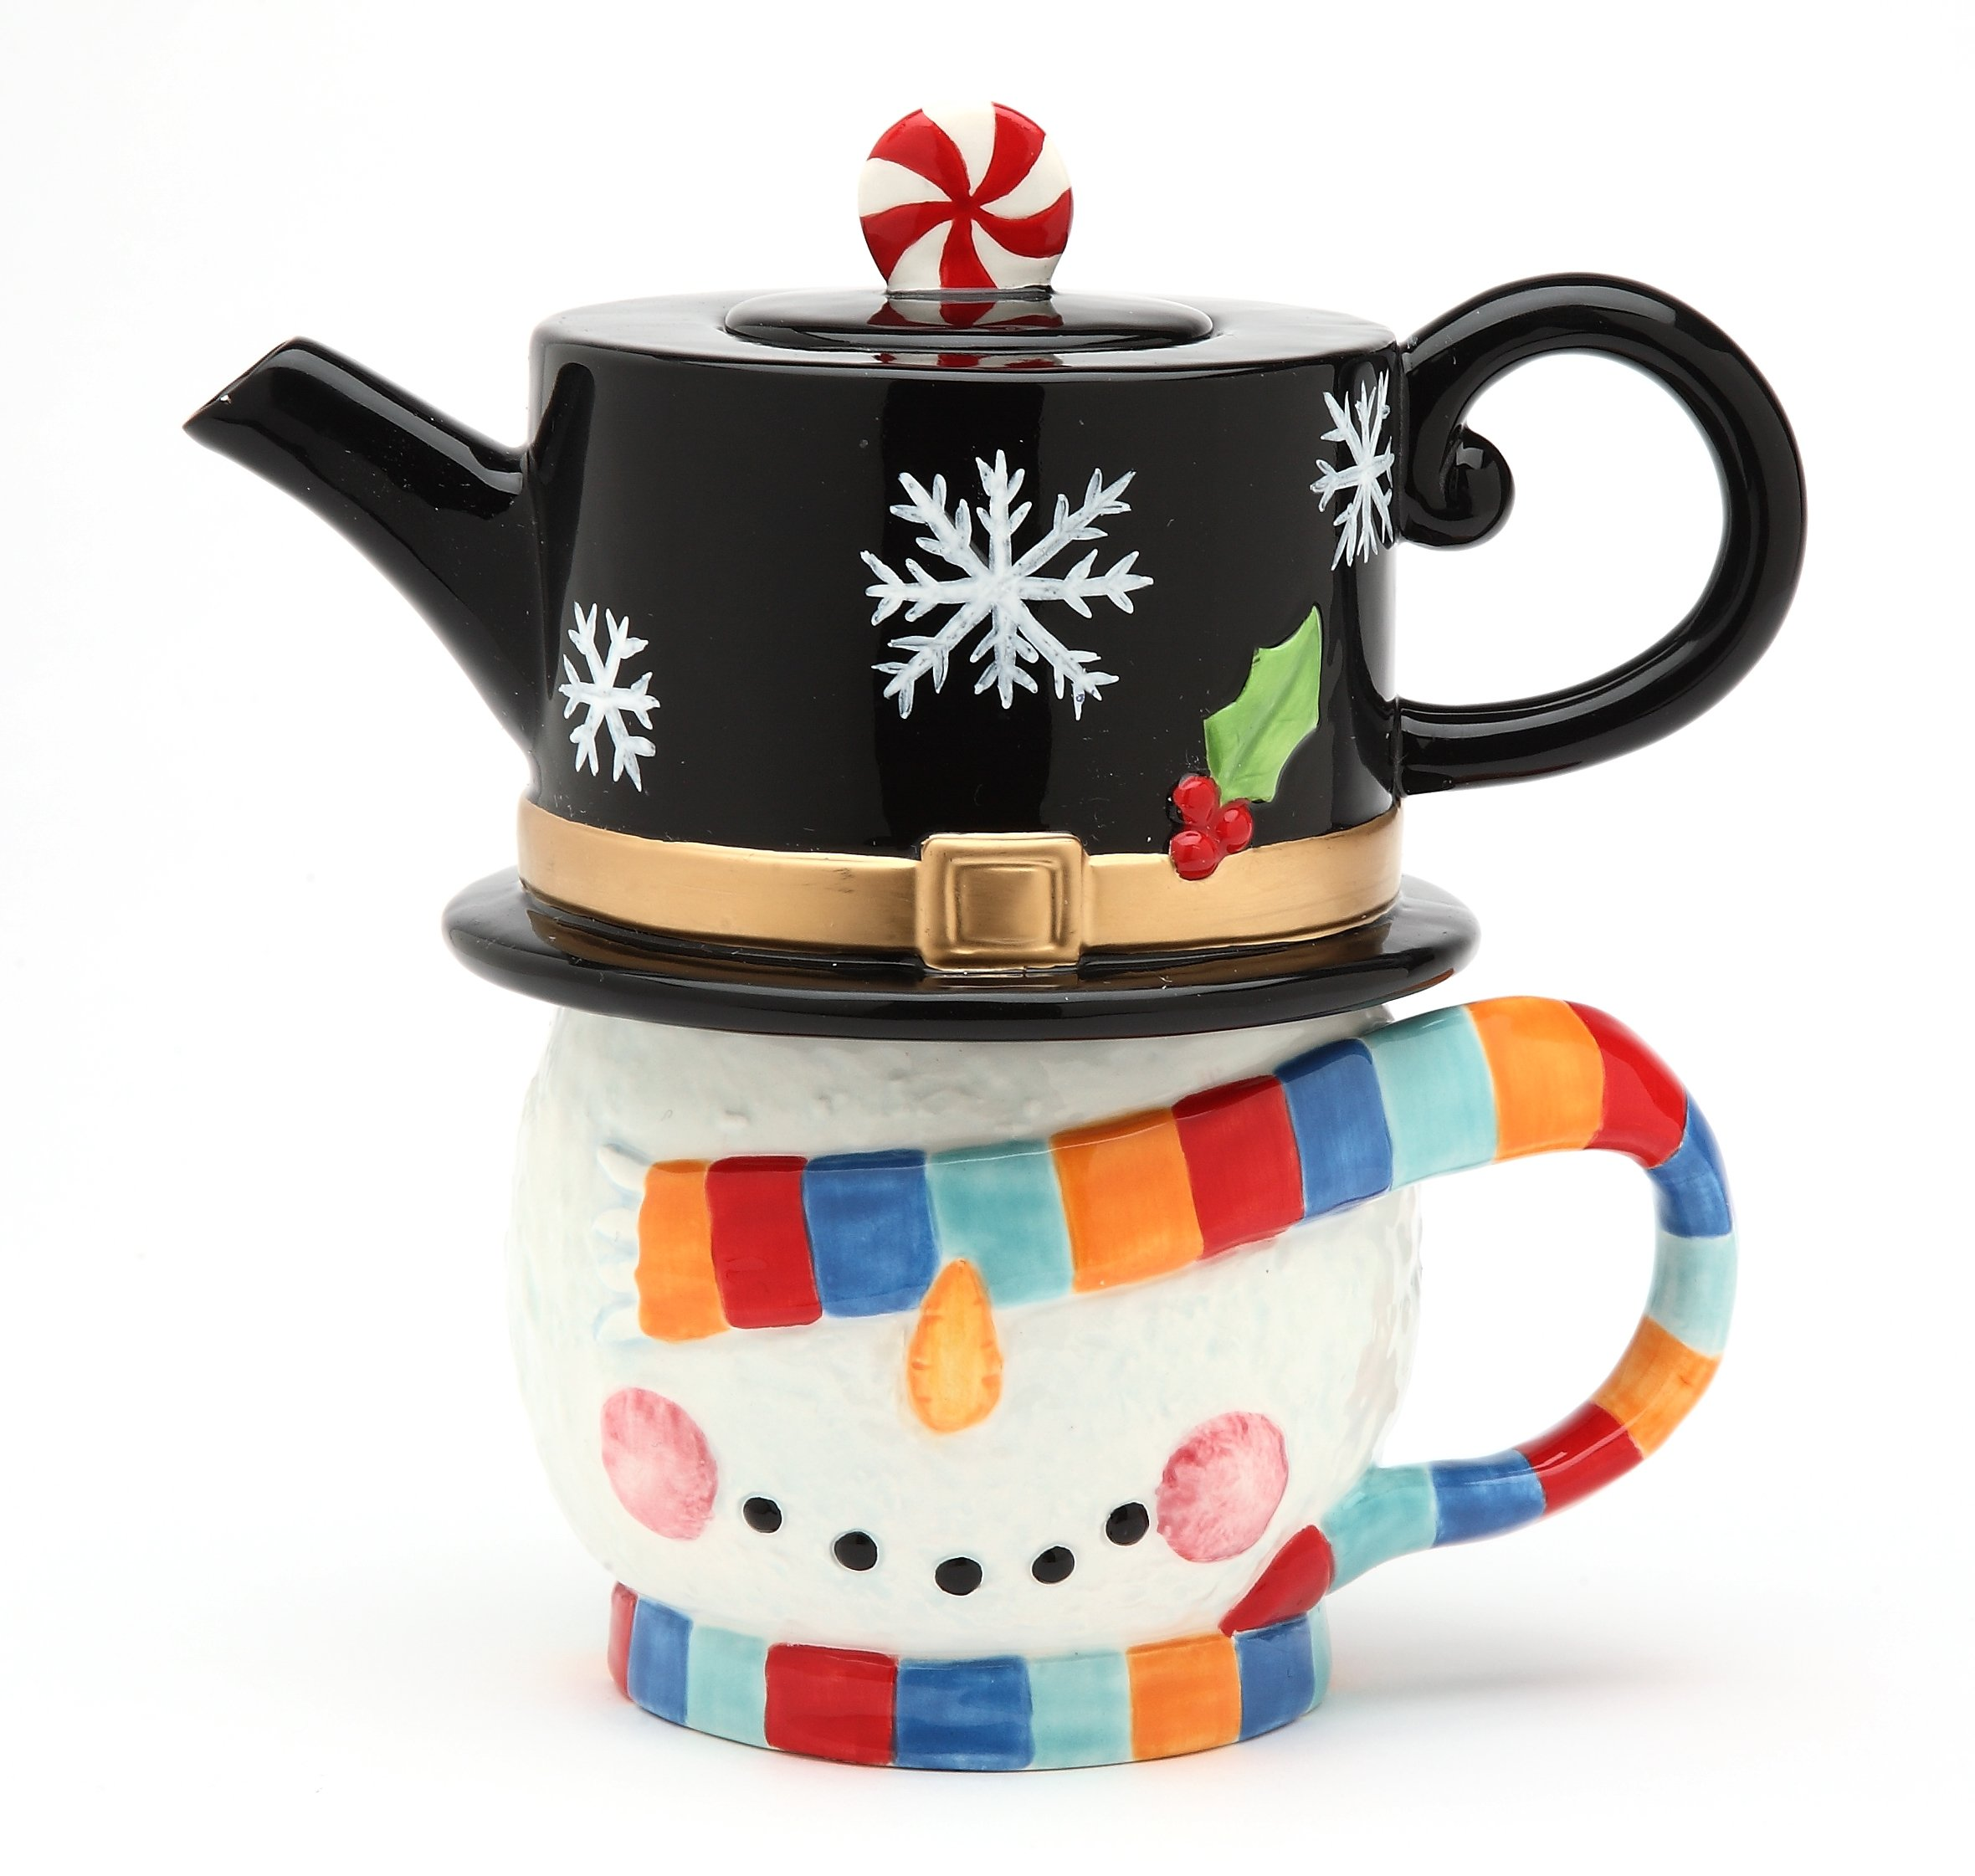 Cosmos Gifts 60913 Fine Ceramic No Peeking Design Snowman Covering with Colorful Scarf Design Tea For One Teapot with Mug Set, 7'' H